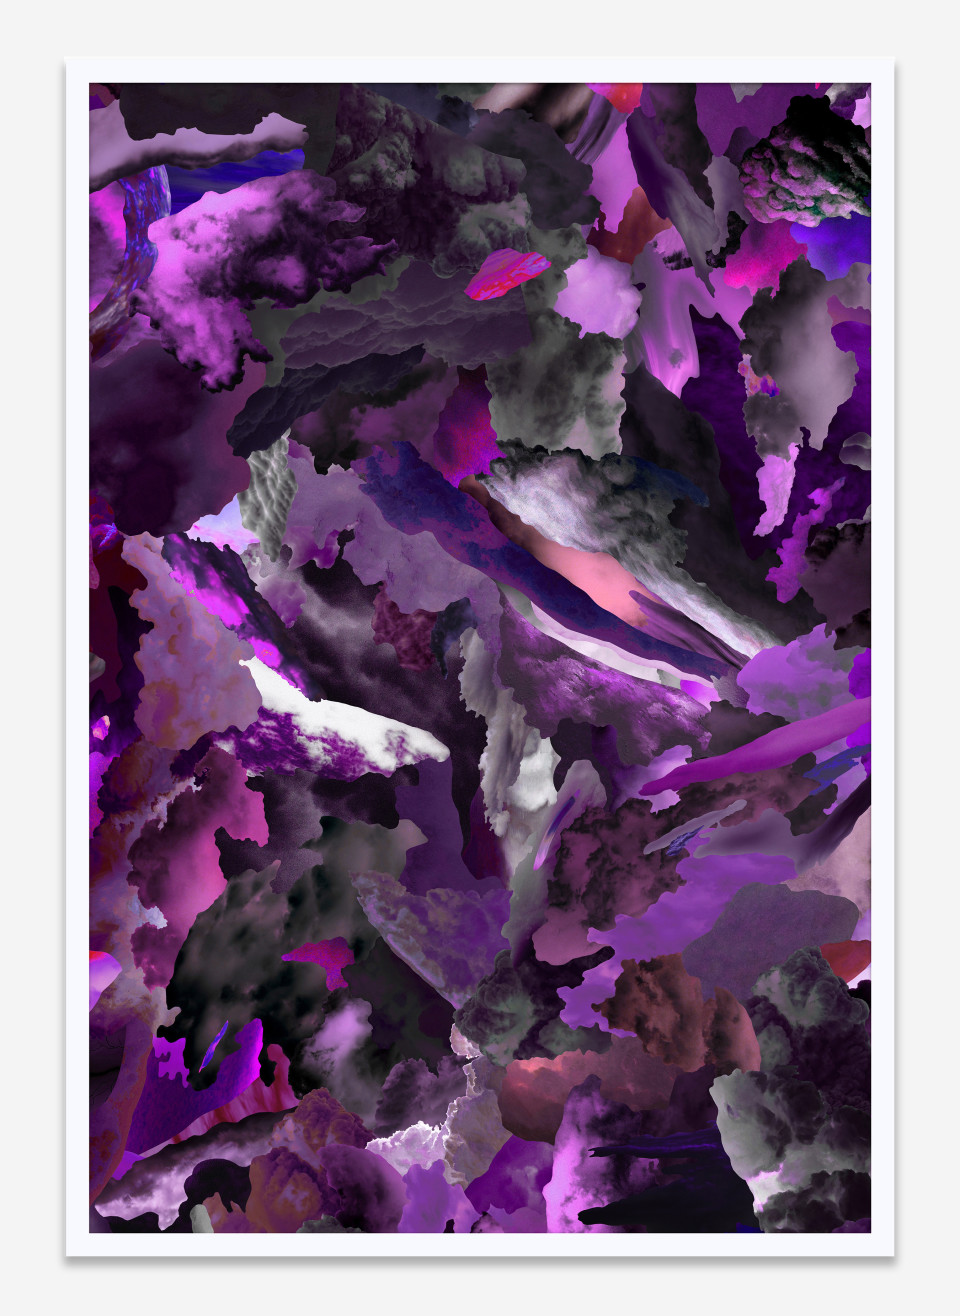 Image: Case Simmons  Clouds W, 2019  pigment print in artist's frame  26 x 18 inches (66 x 45.7 cm)  edition of 1 plus 1 artist's proof